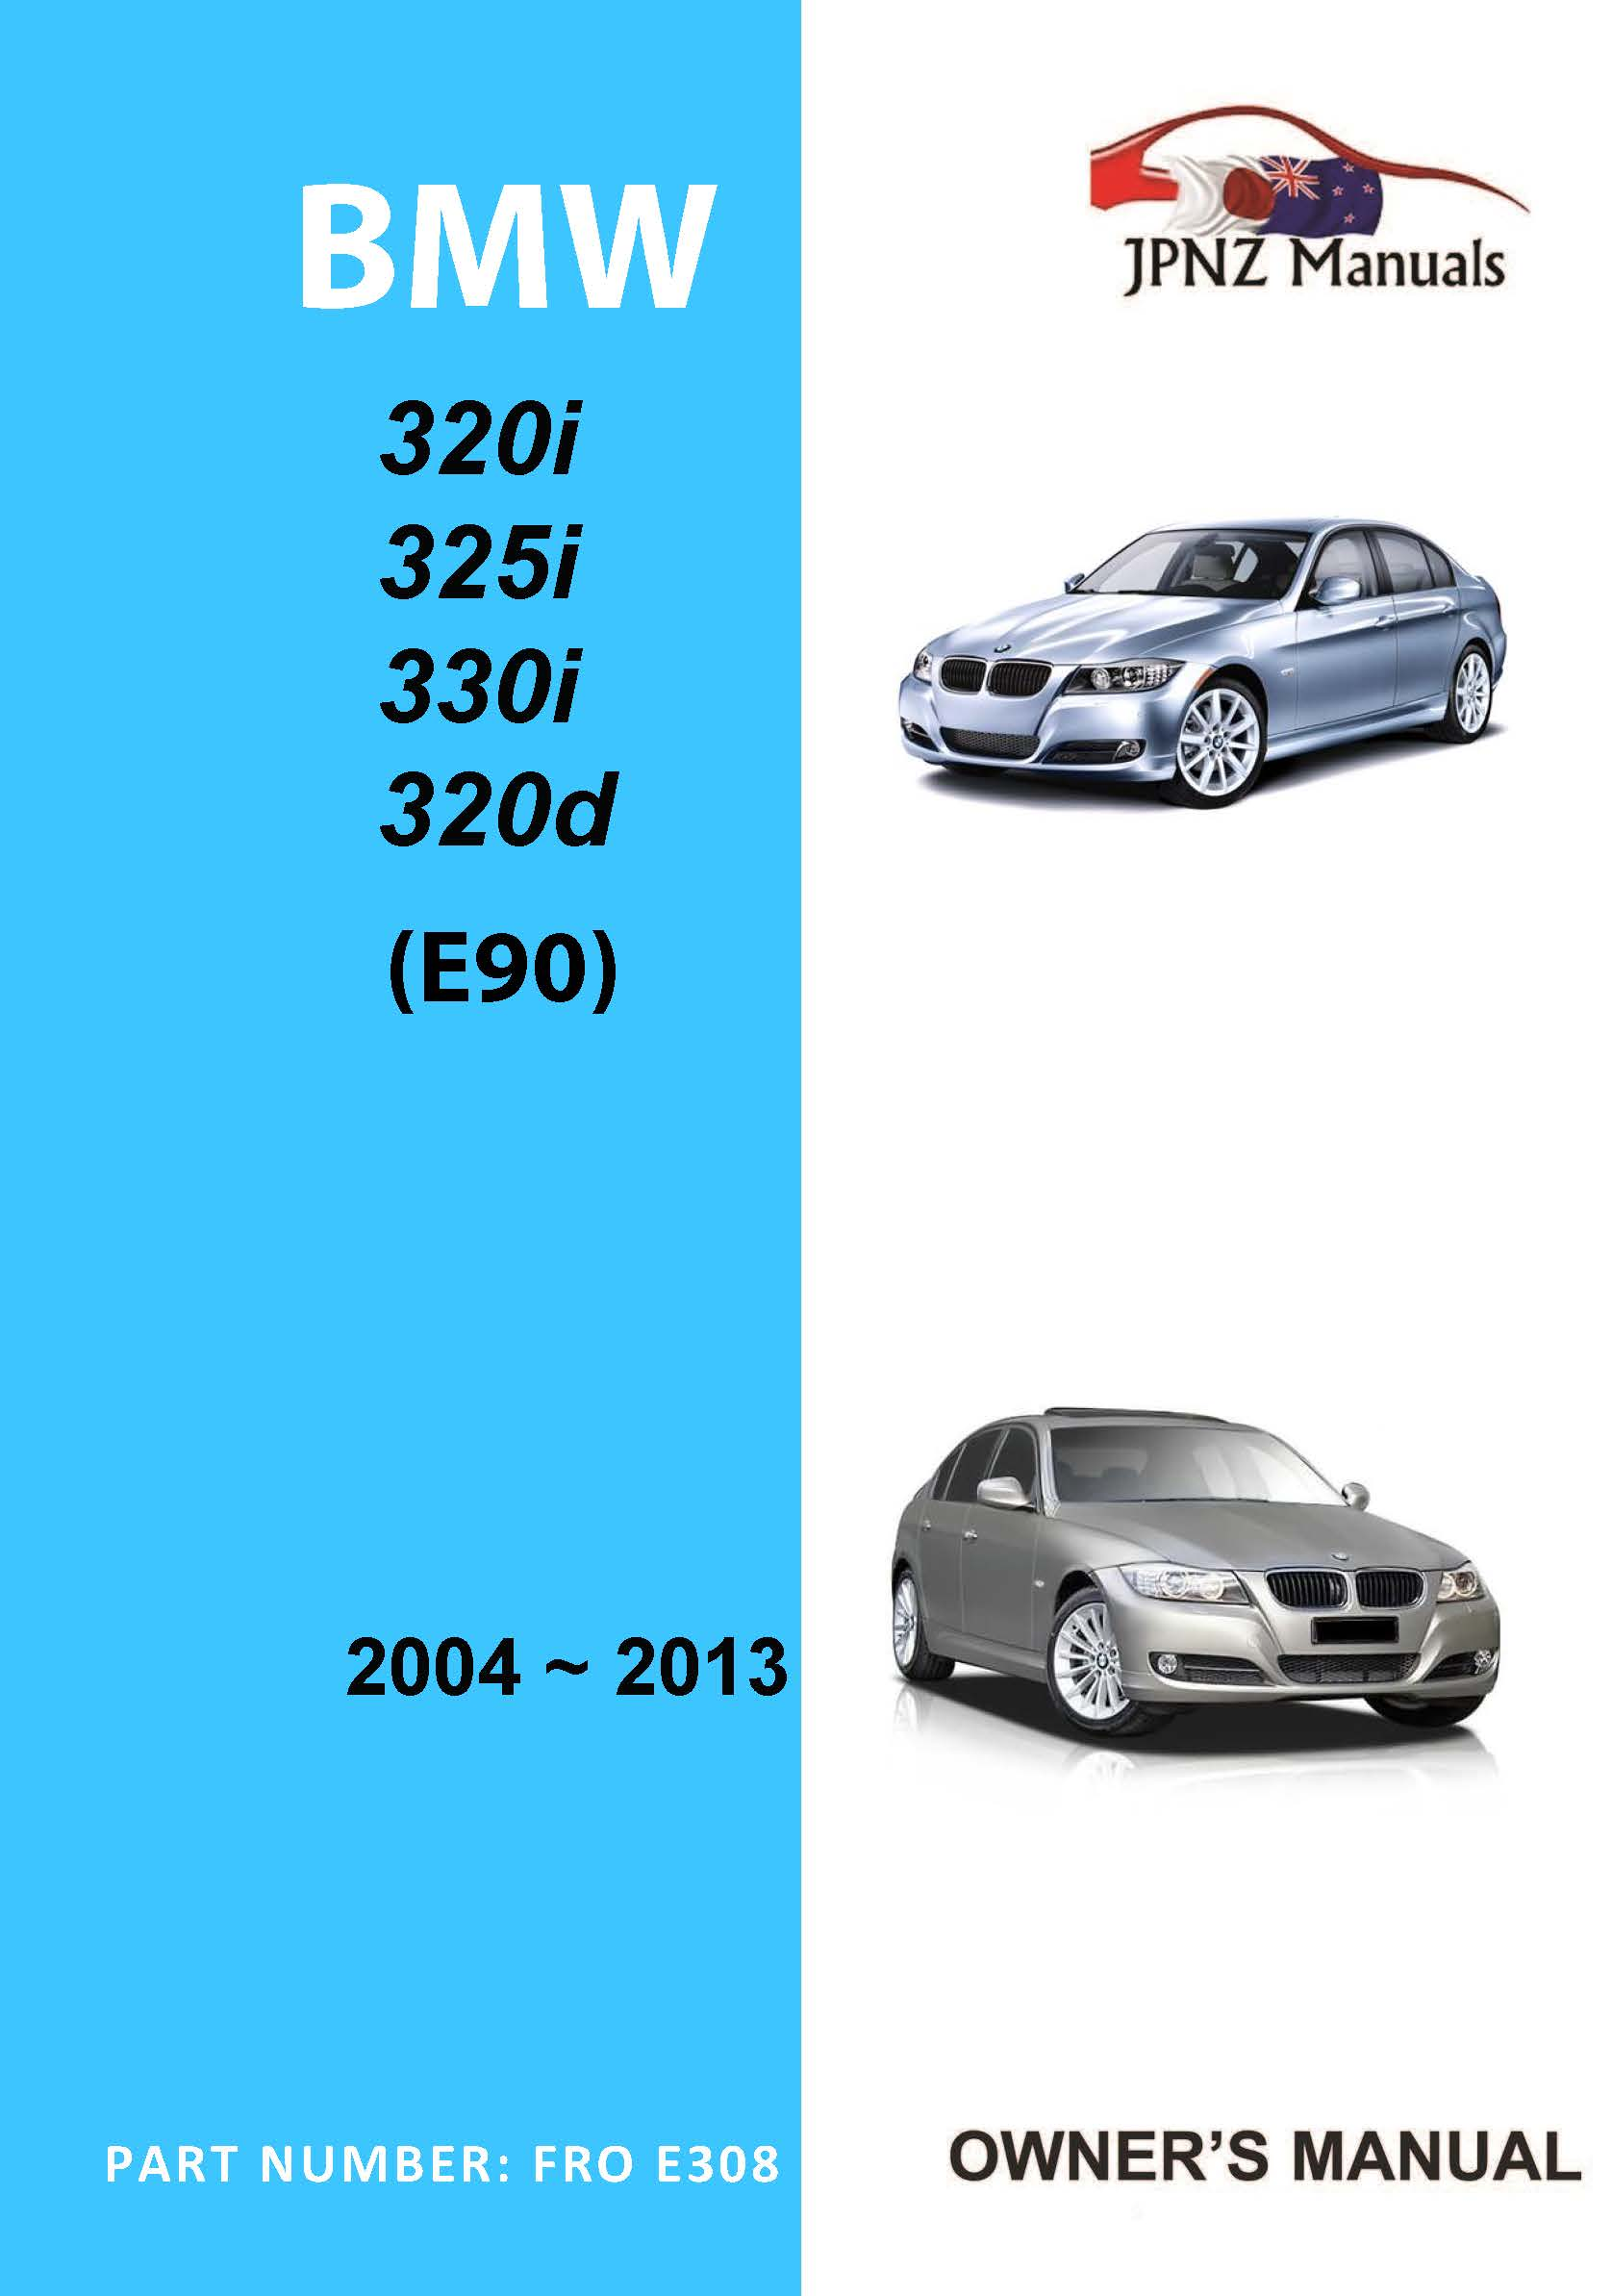 BMW - 3 Series E90 car owners user manual in English   2004 - 2013